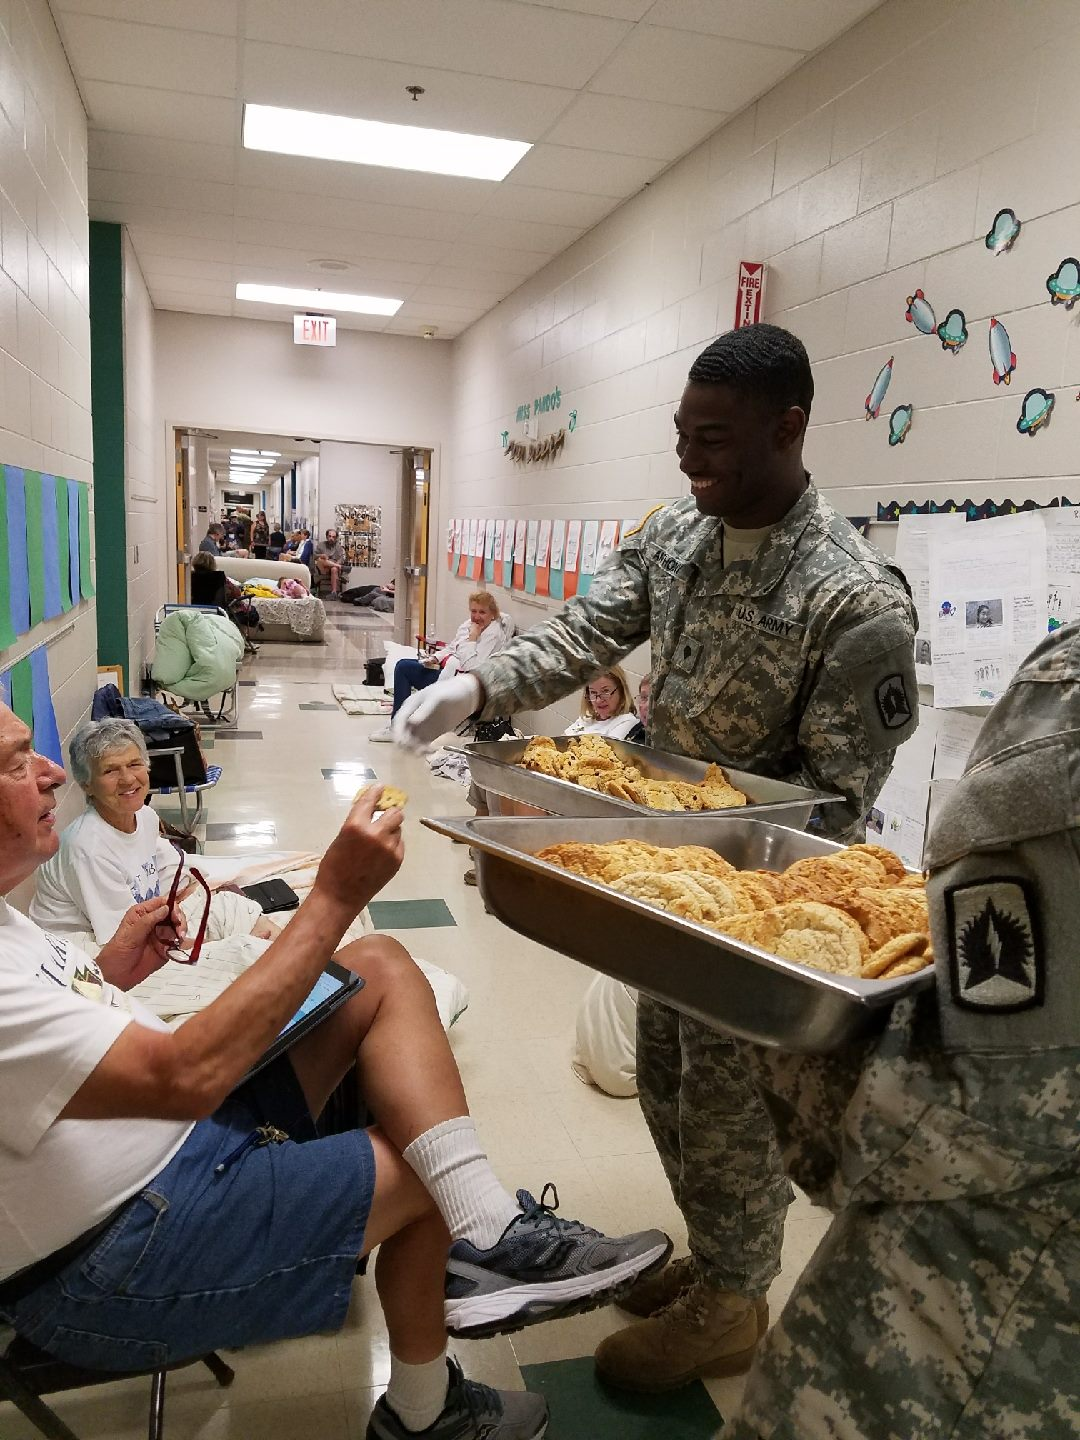 "<div class=""meta image-caption""><div class=""origin-logo origin-image none""><span>none</span></div><span class=""caption-text"">A National Guard soldier sang ''Happy Birthday'' to Shelby Johnson, 80, while passing out cookies. (FLGuard/Twitter)</span></div>"